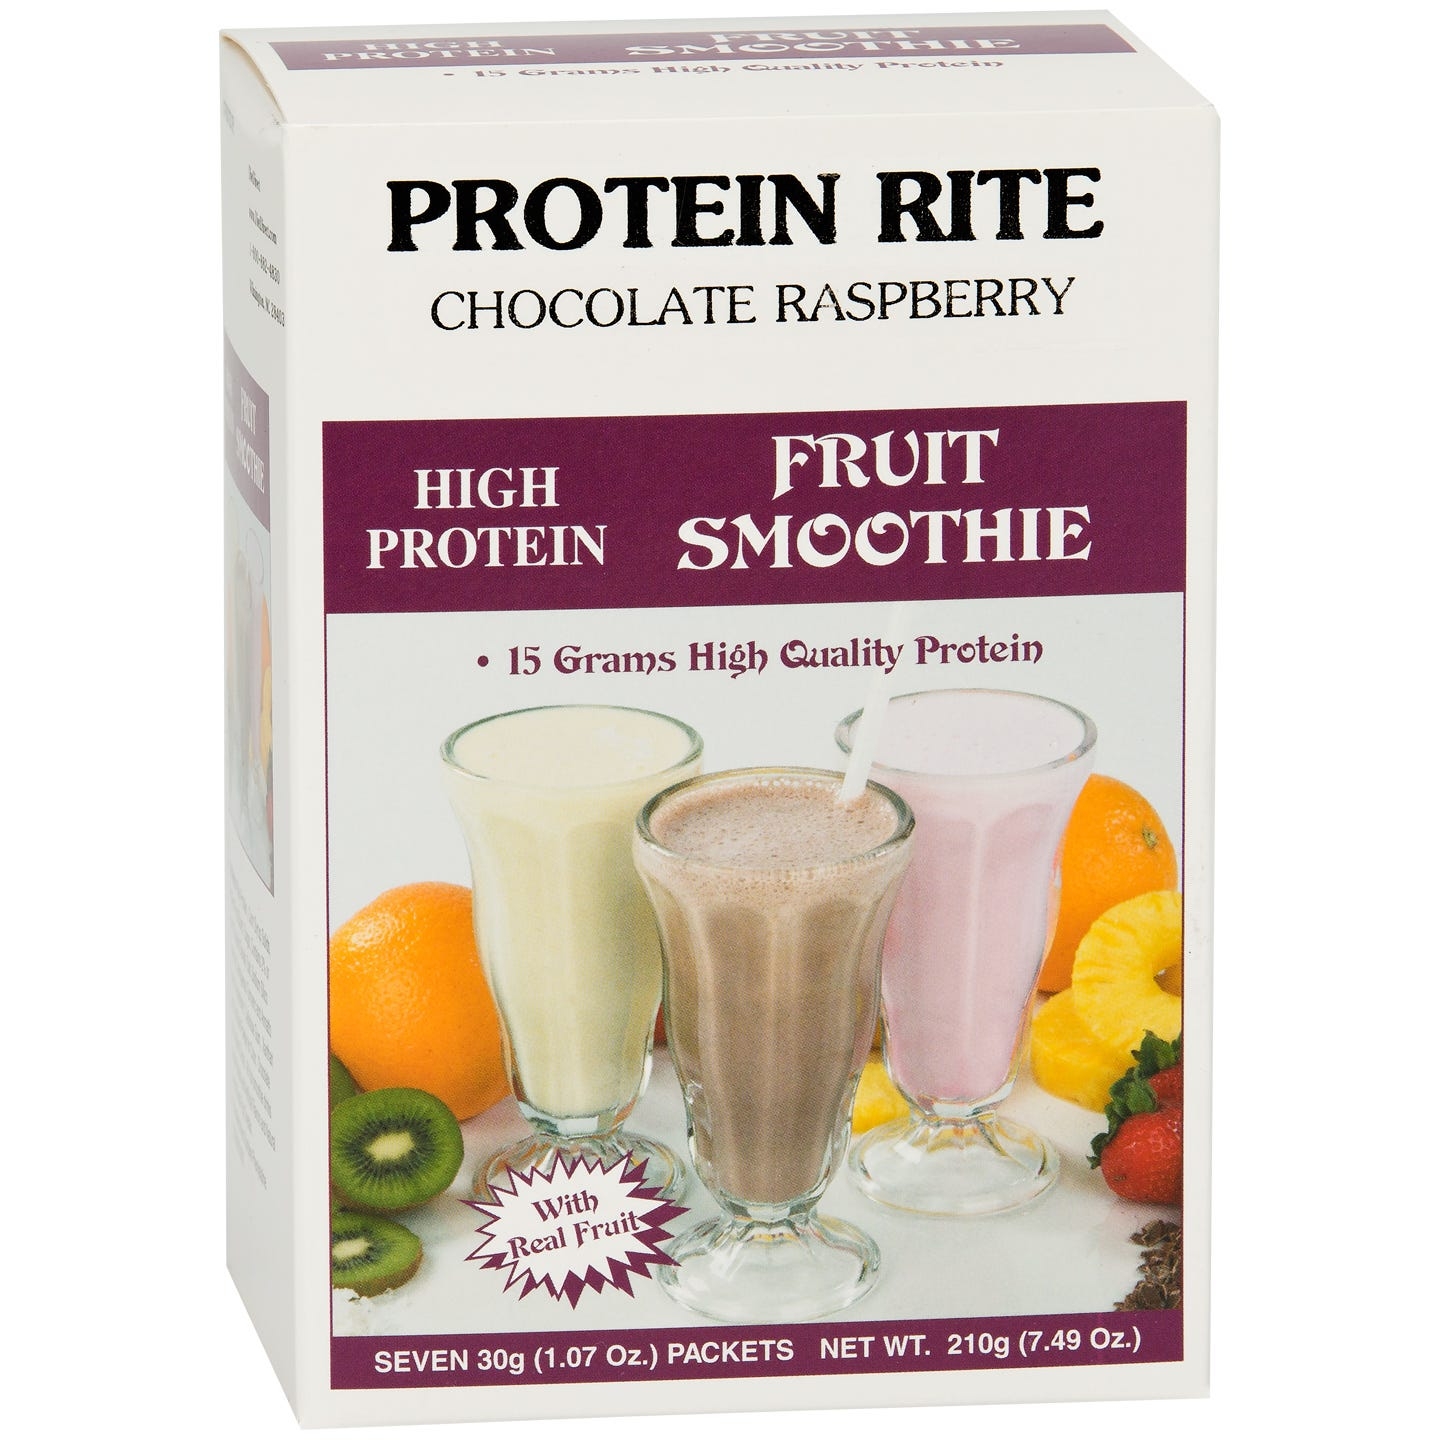 Protein Rite Fruit Smoothies - Chocolate Raspberry